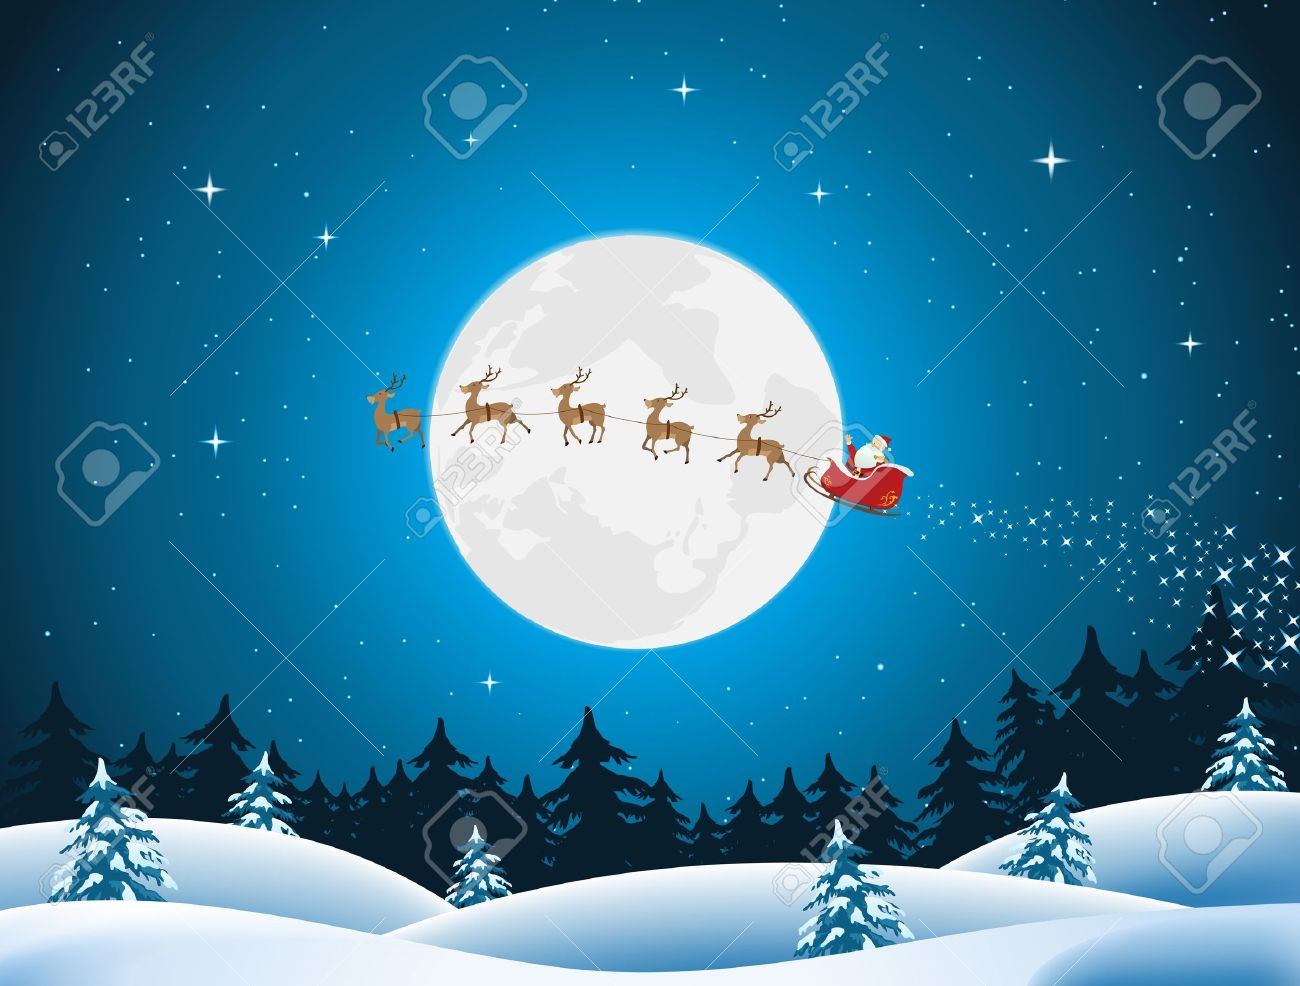 illustration of santa driving the sleigh and his reindeer through